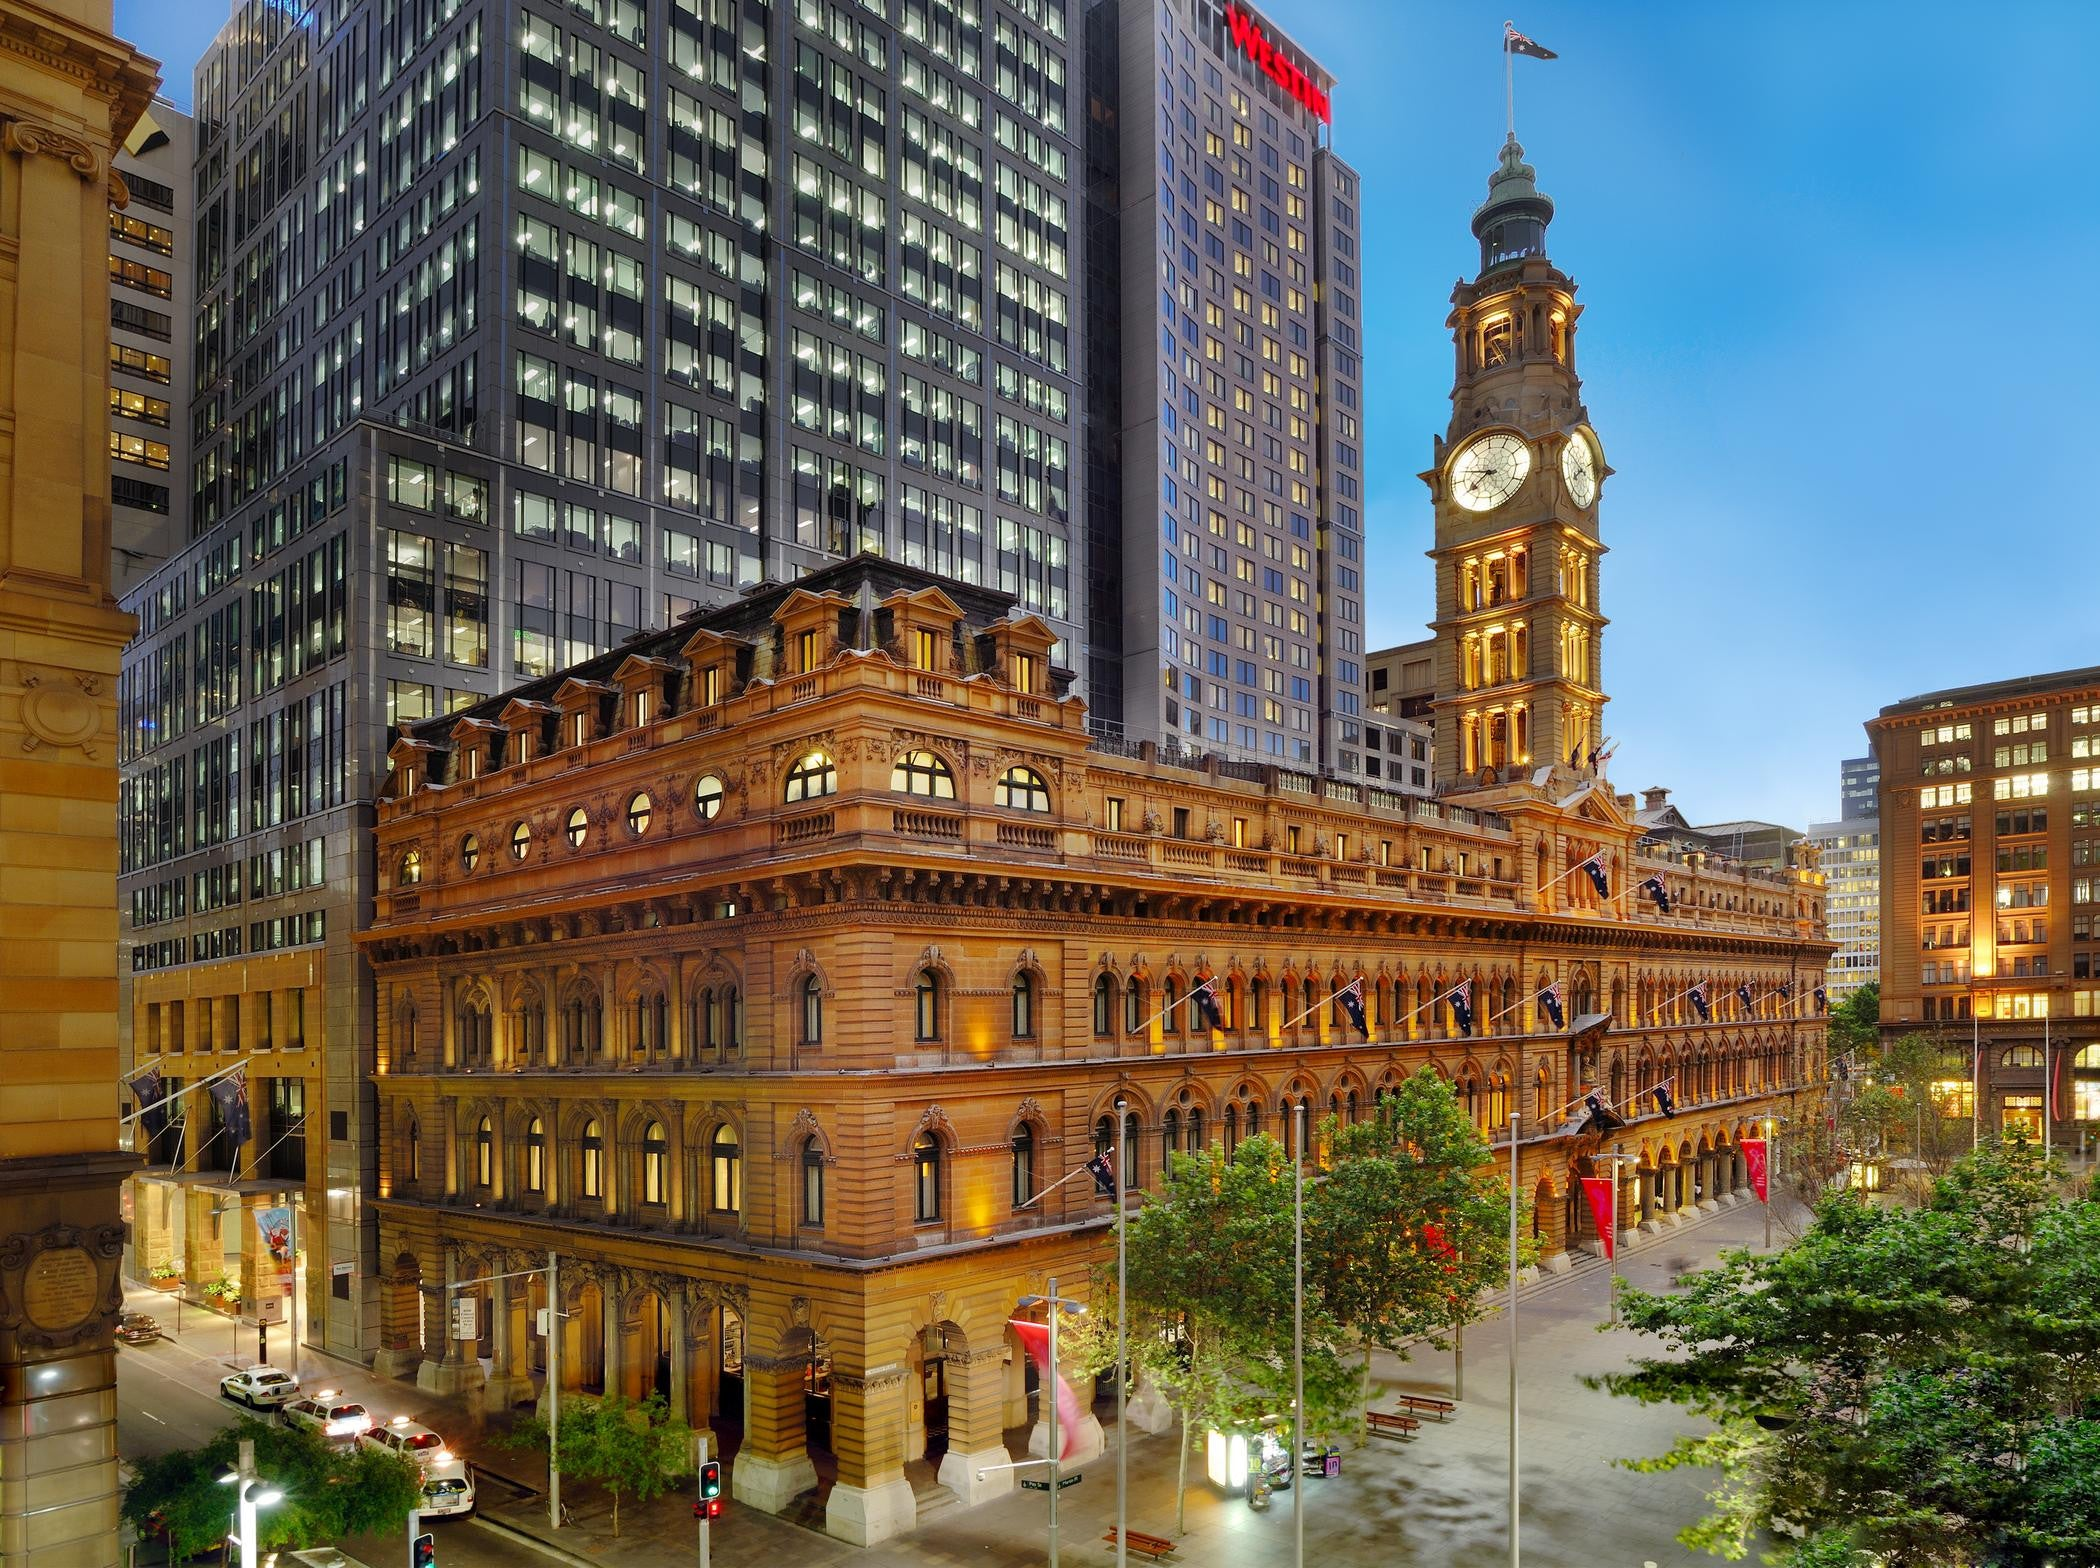 9 Location For Wedding Photos In Sydney - Martin Place